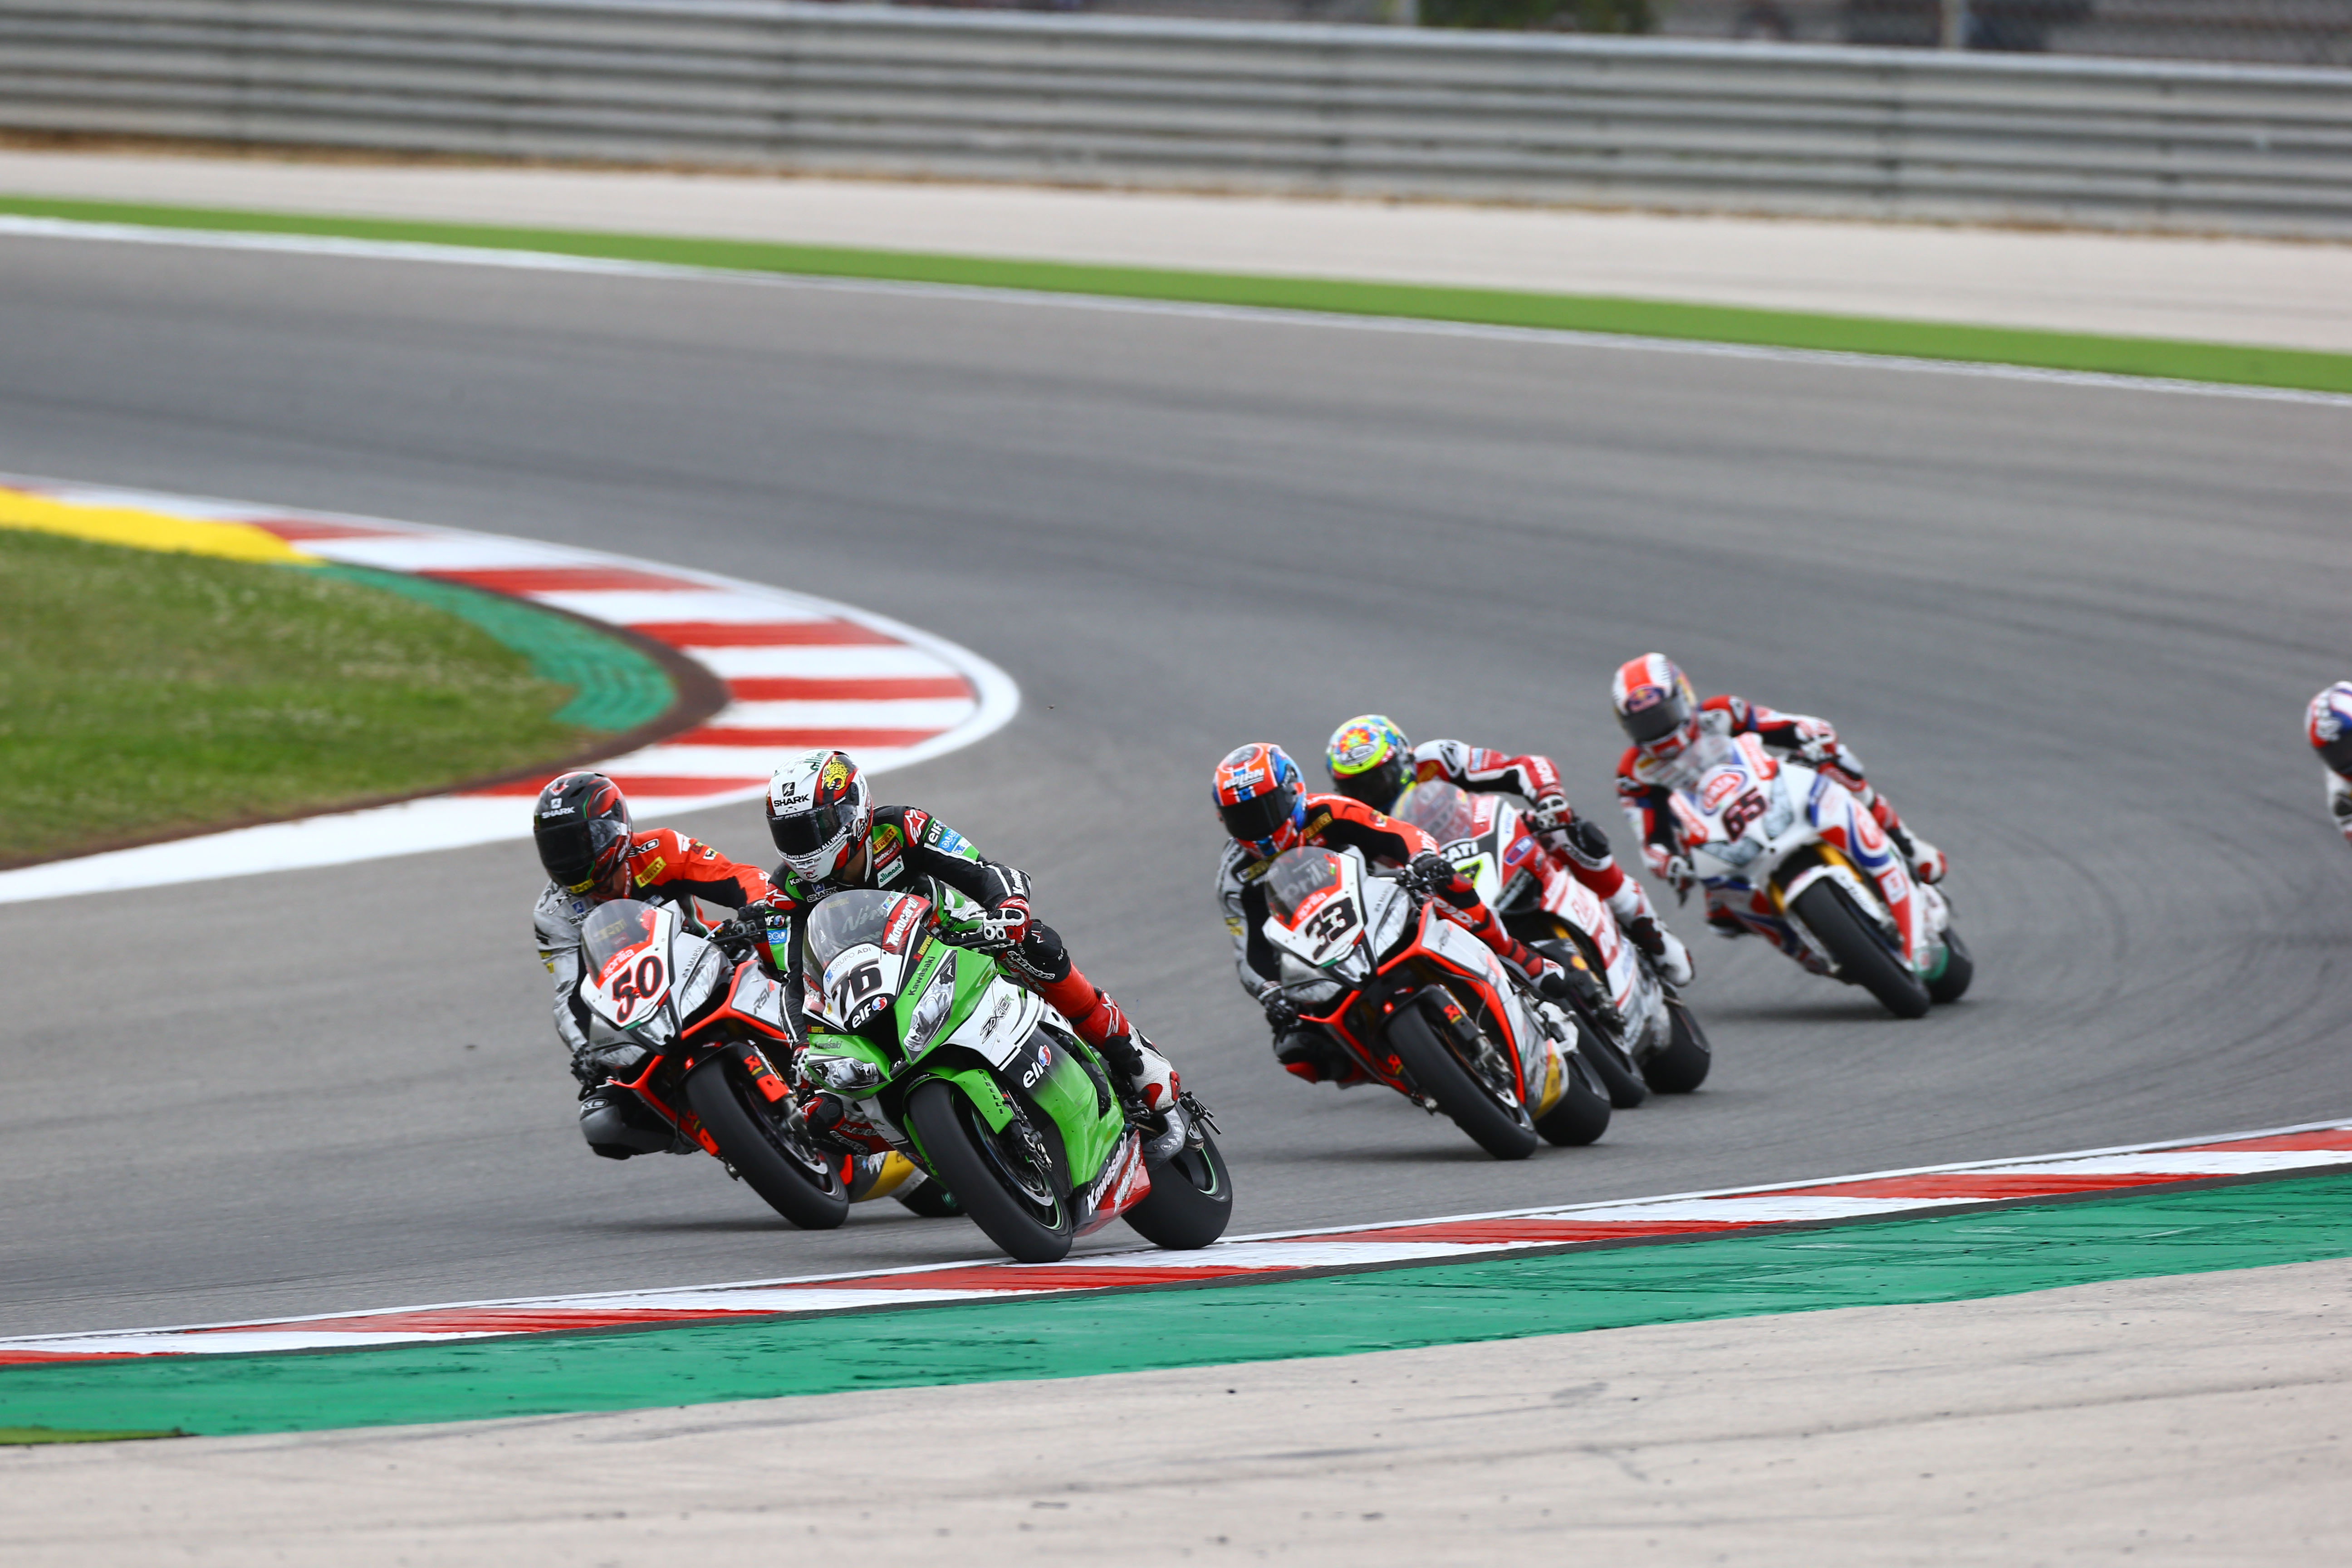 WSB 2014: Championship standings after Portimao